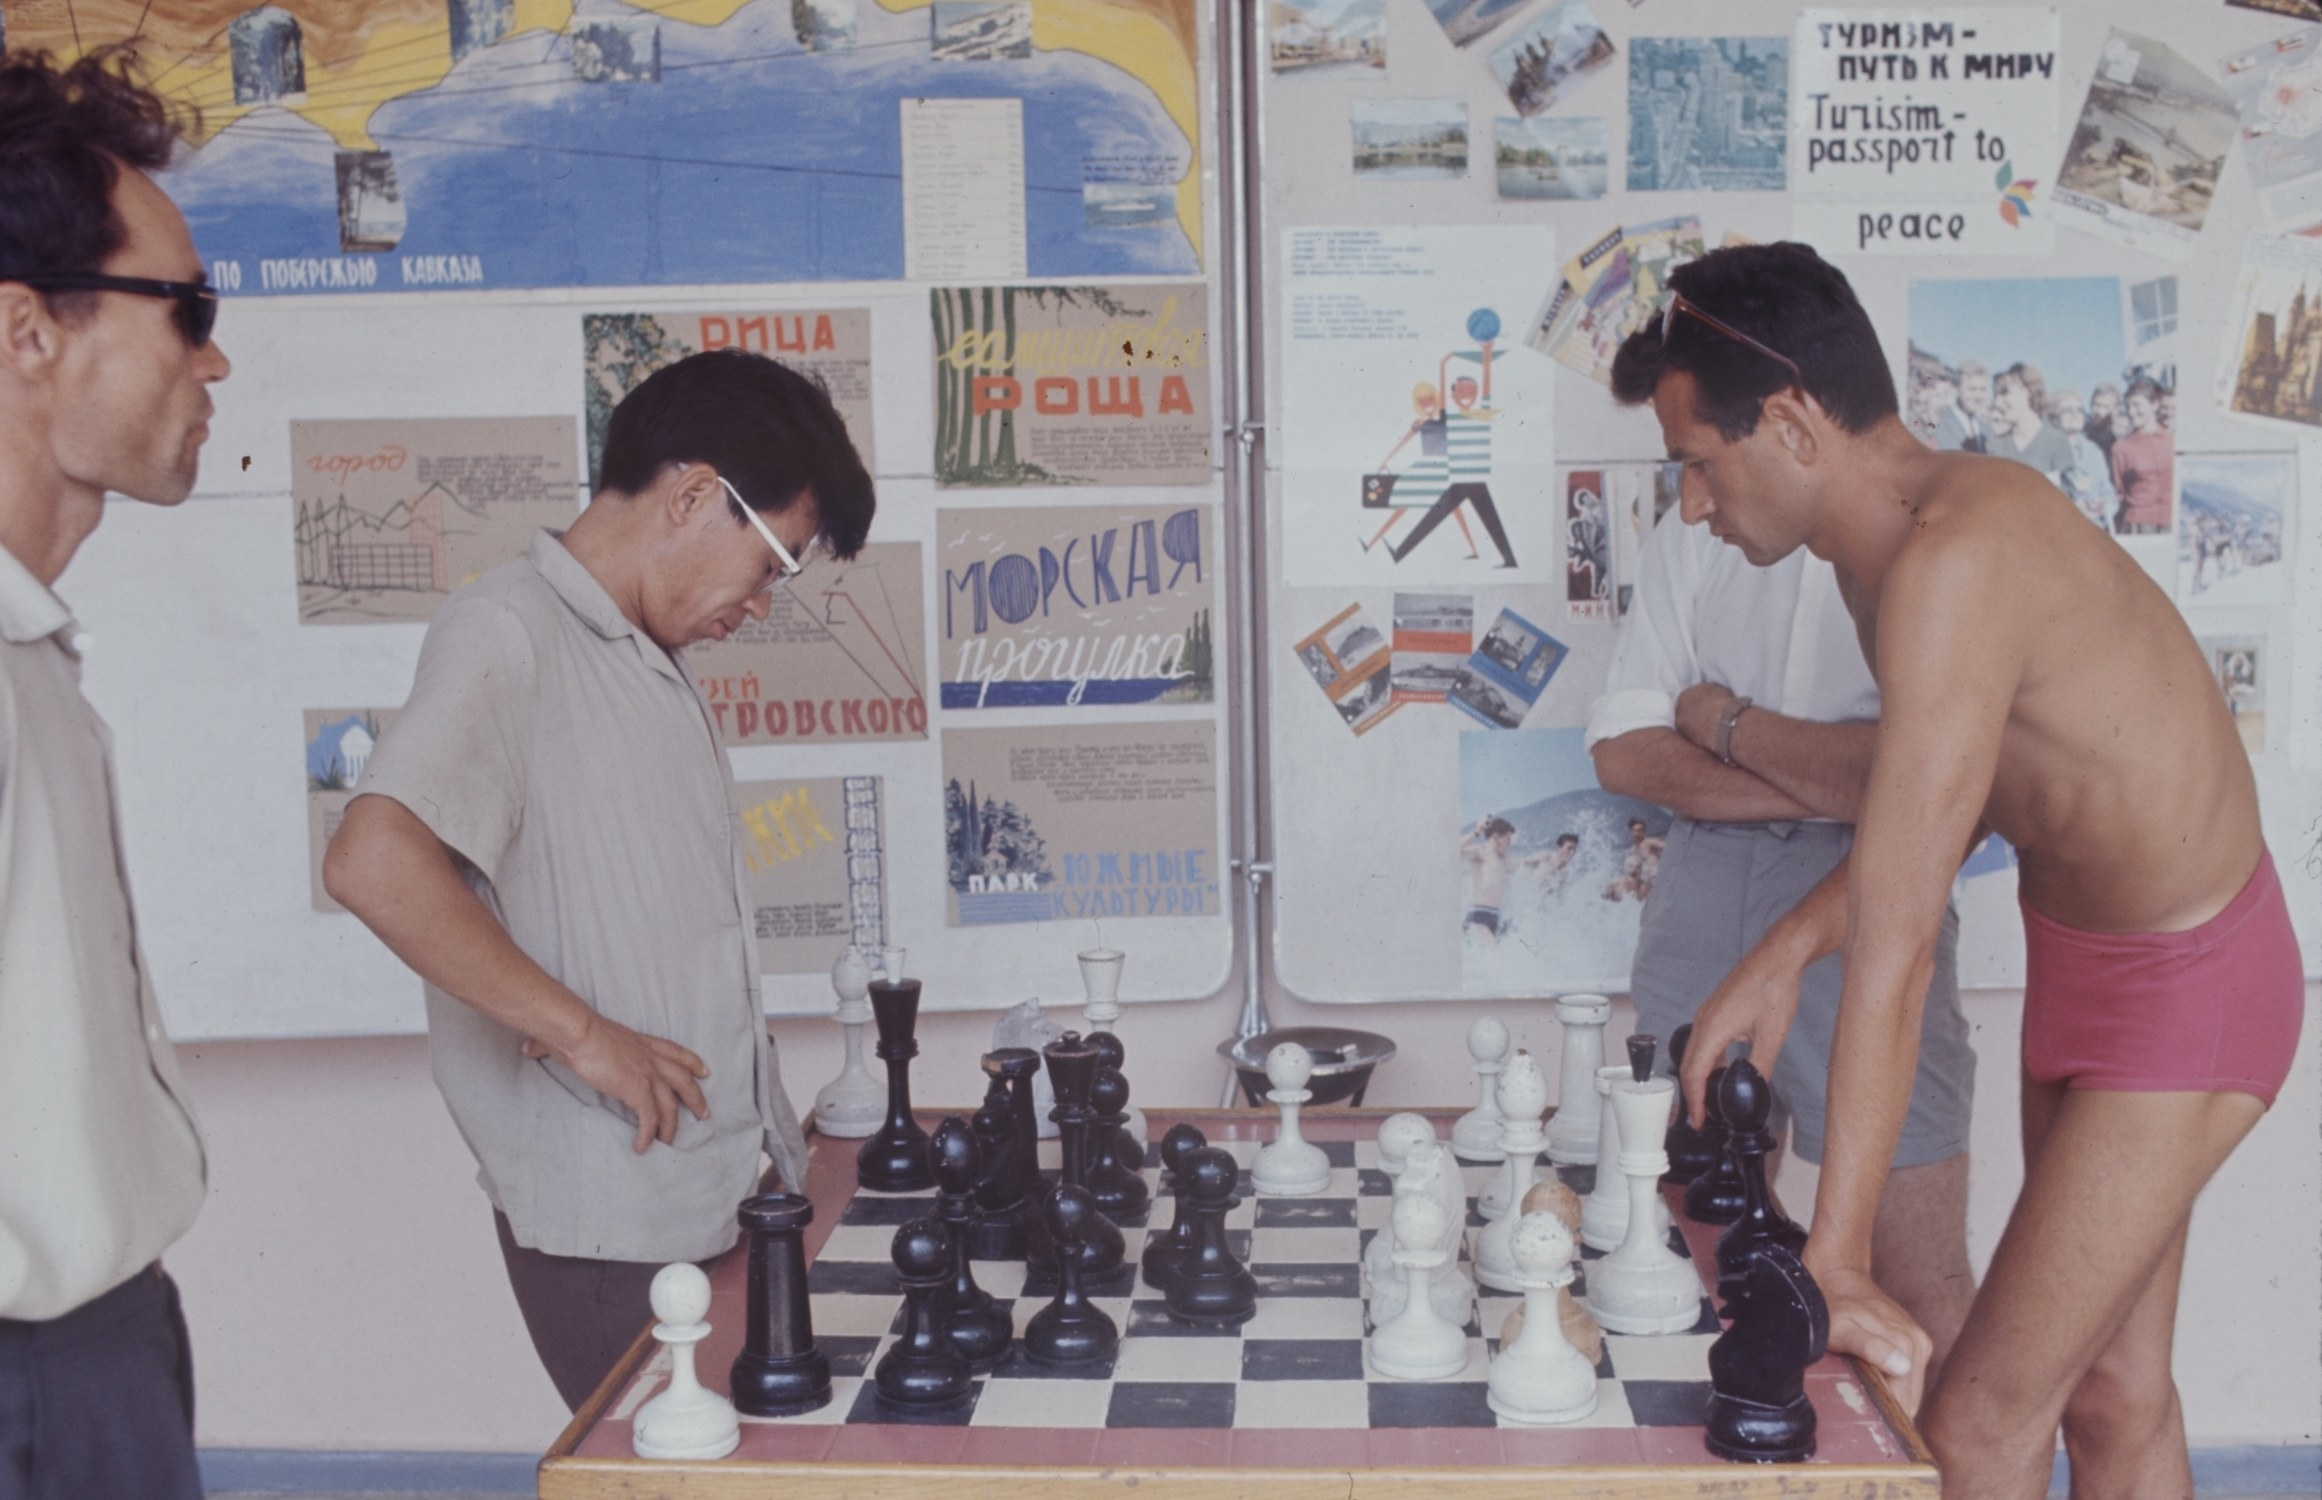 A man in a polo shirt plays large-scale chess with a man in pink bathing shorts